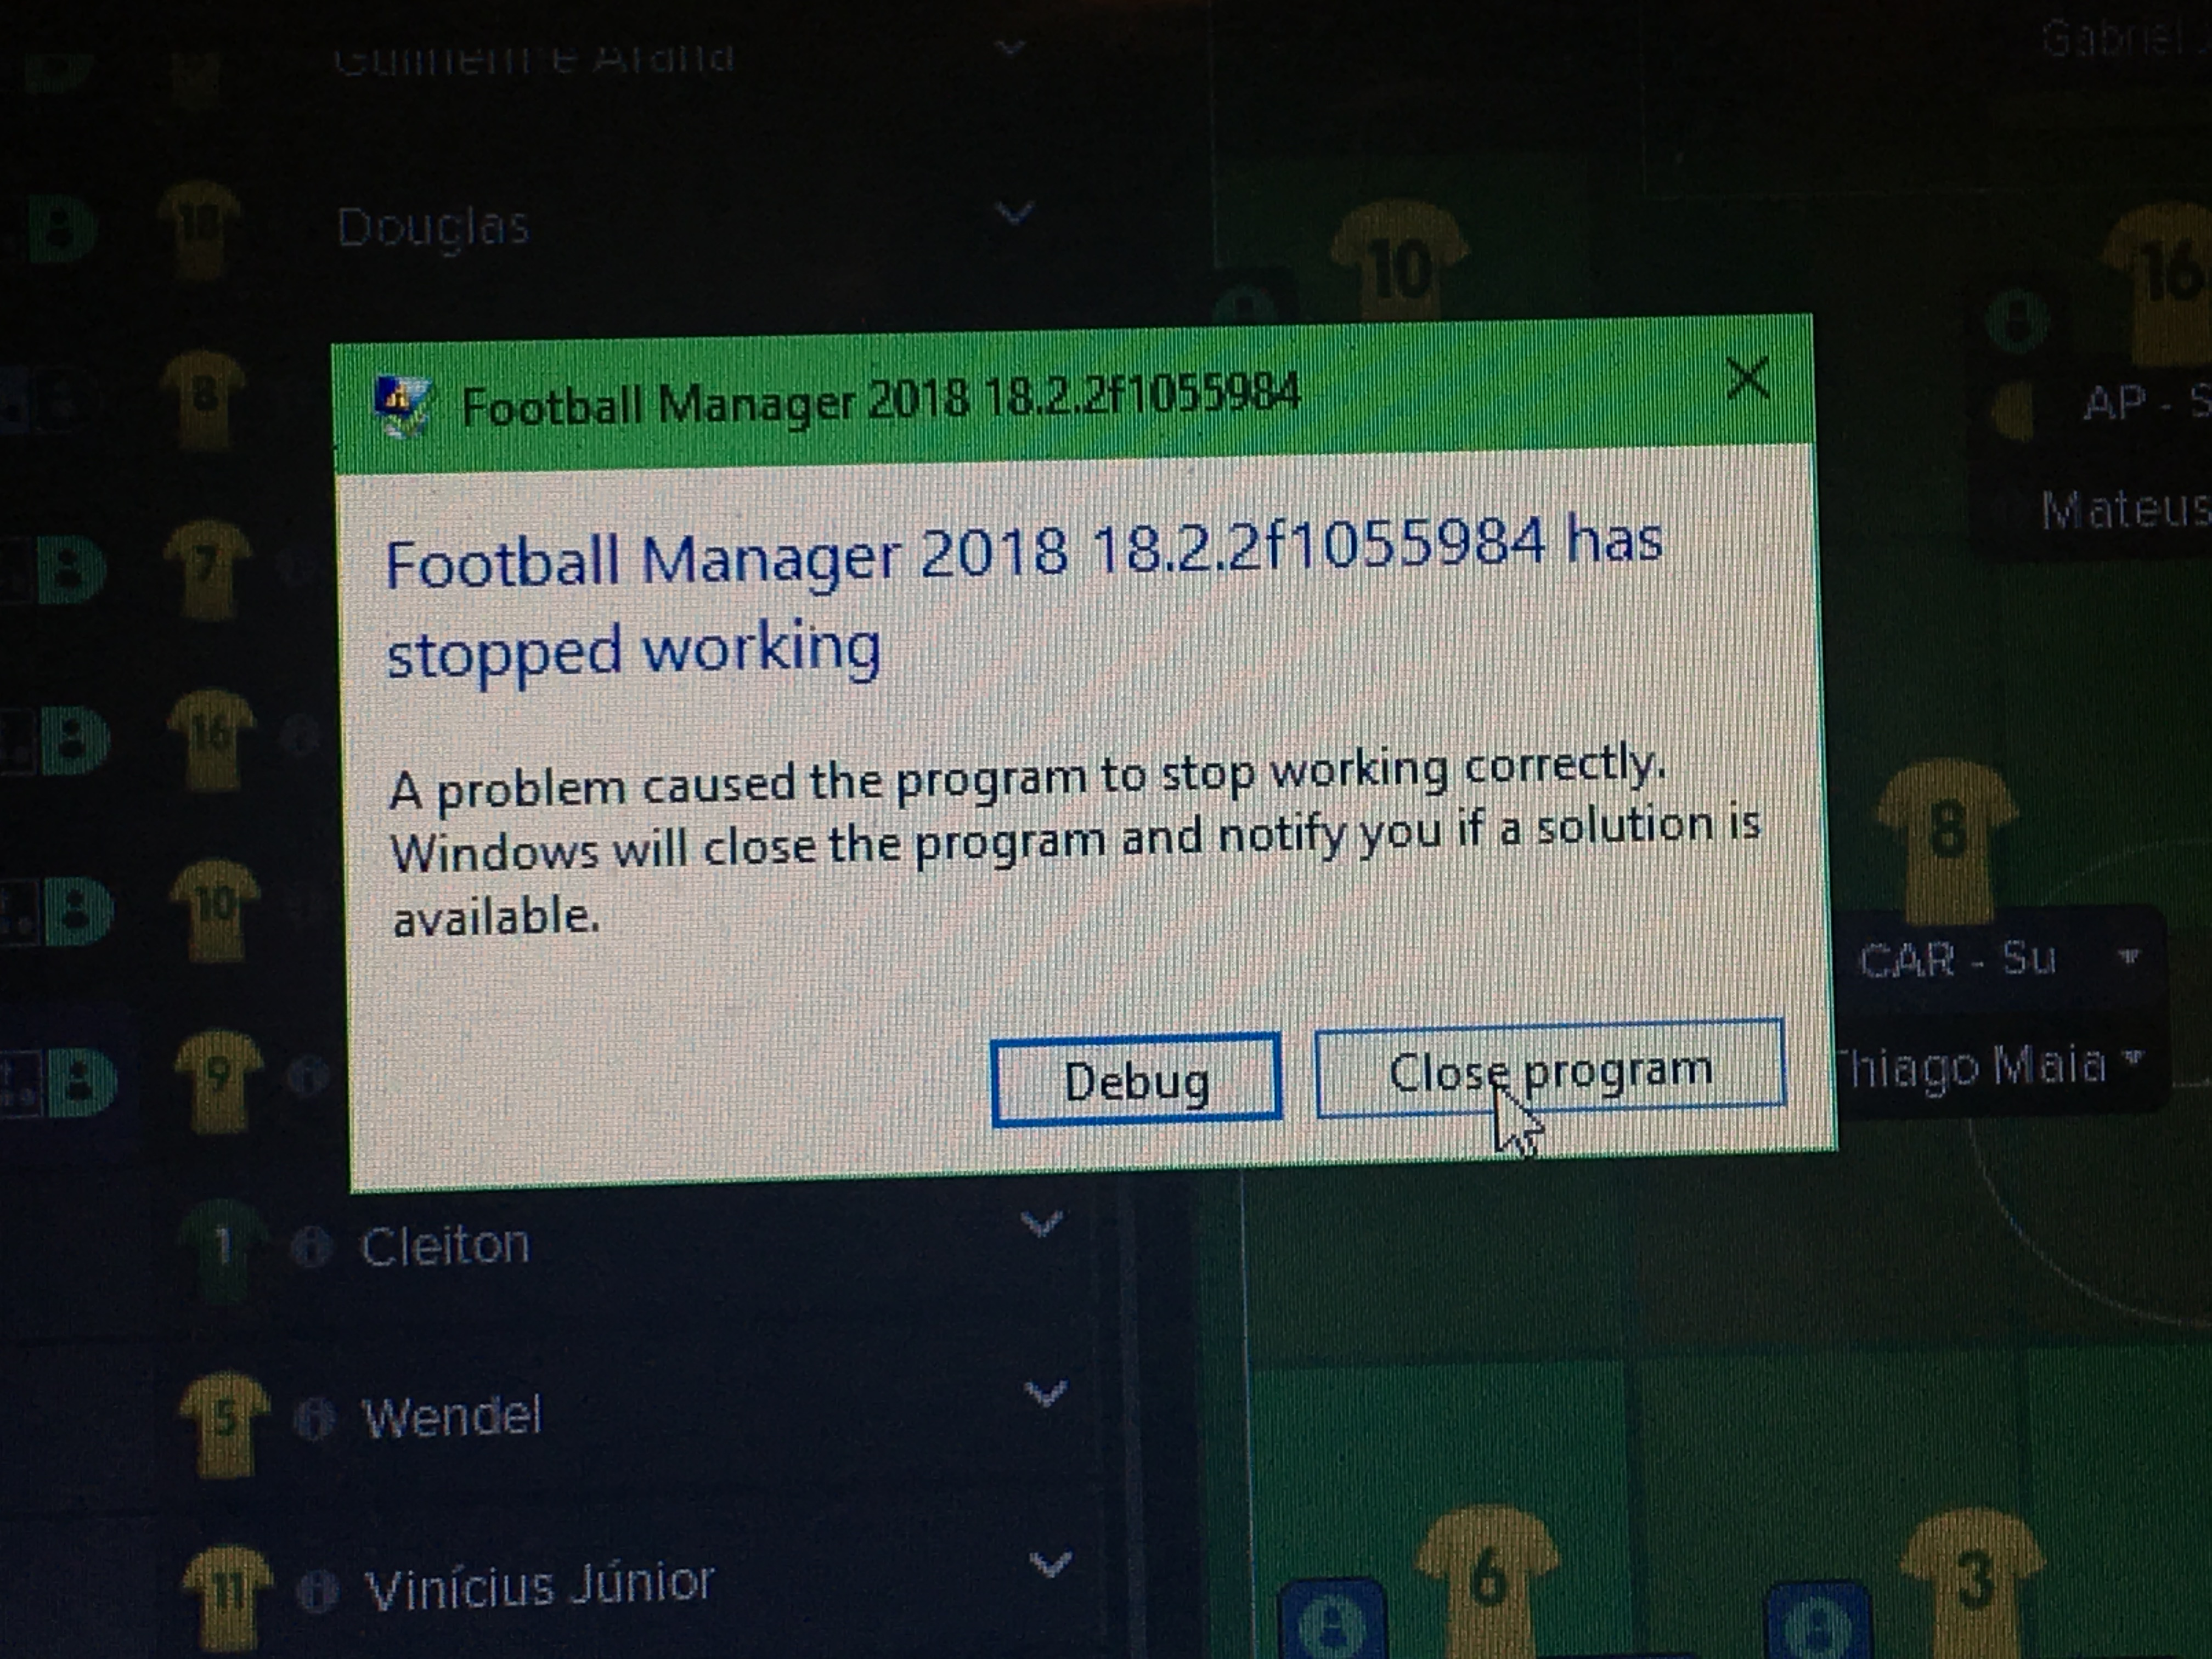 Football Manager 2018 18 2 2f1055984 has stopped working - Crashes